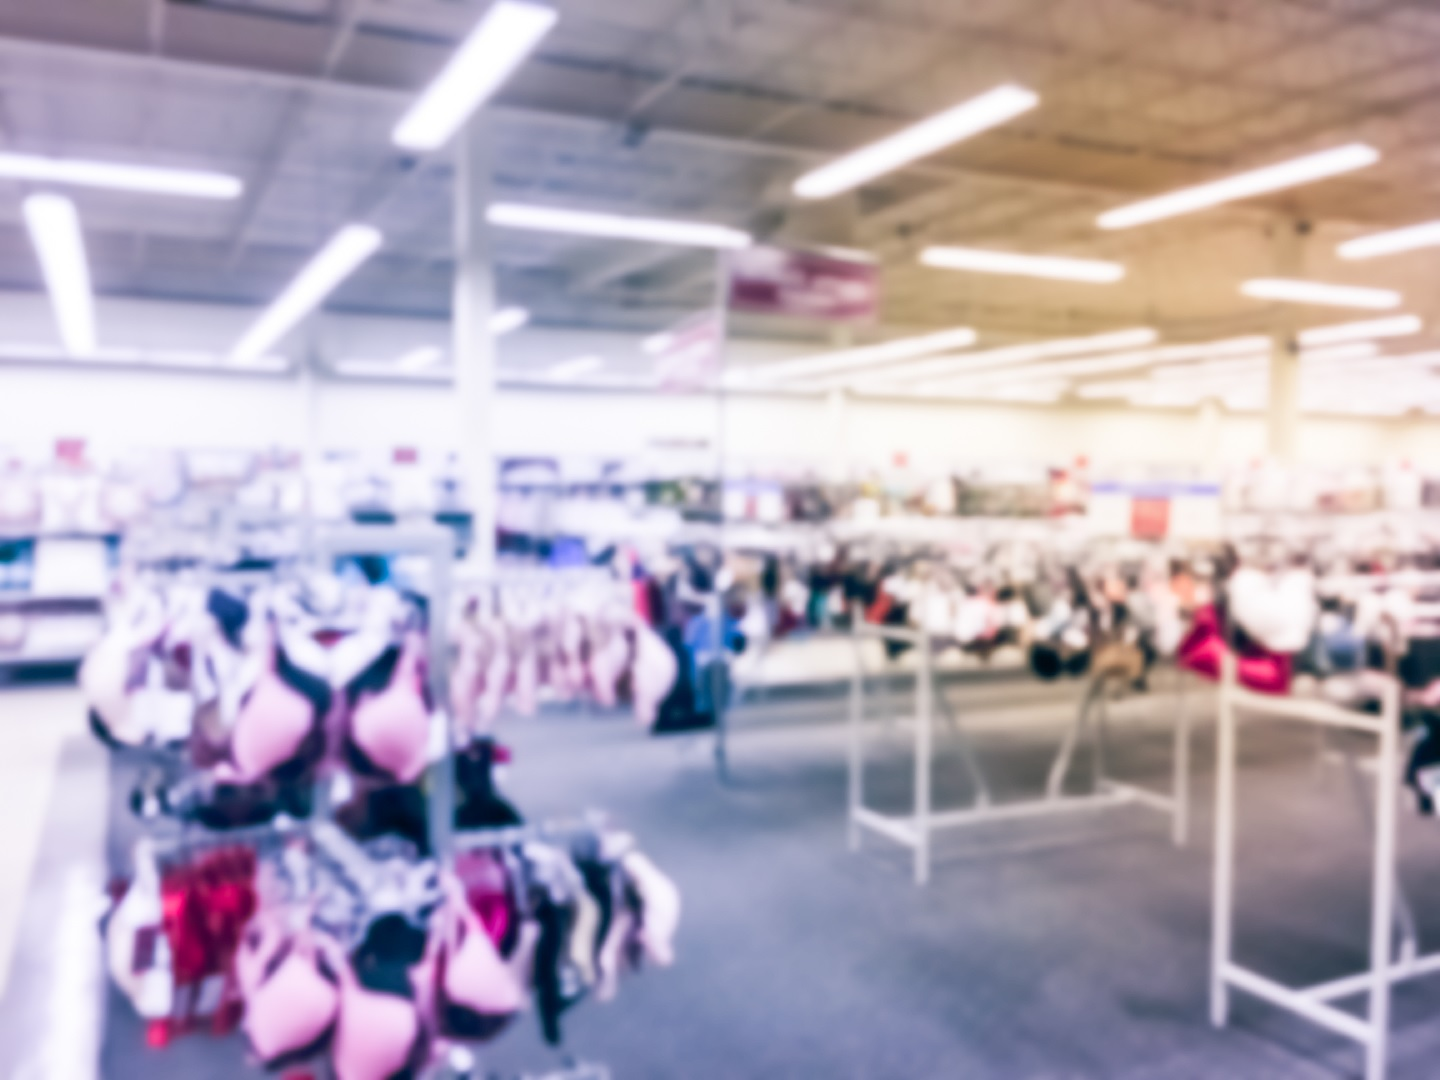 One Mom Outraged After Discovering Calvin Klein Makes Padded Bras for Young Girls